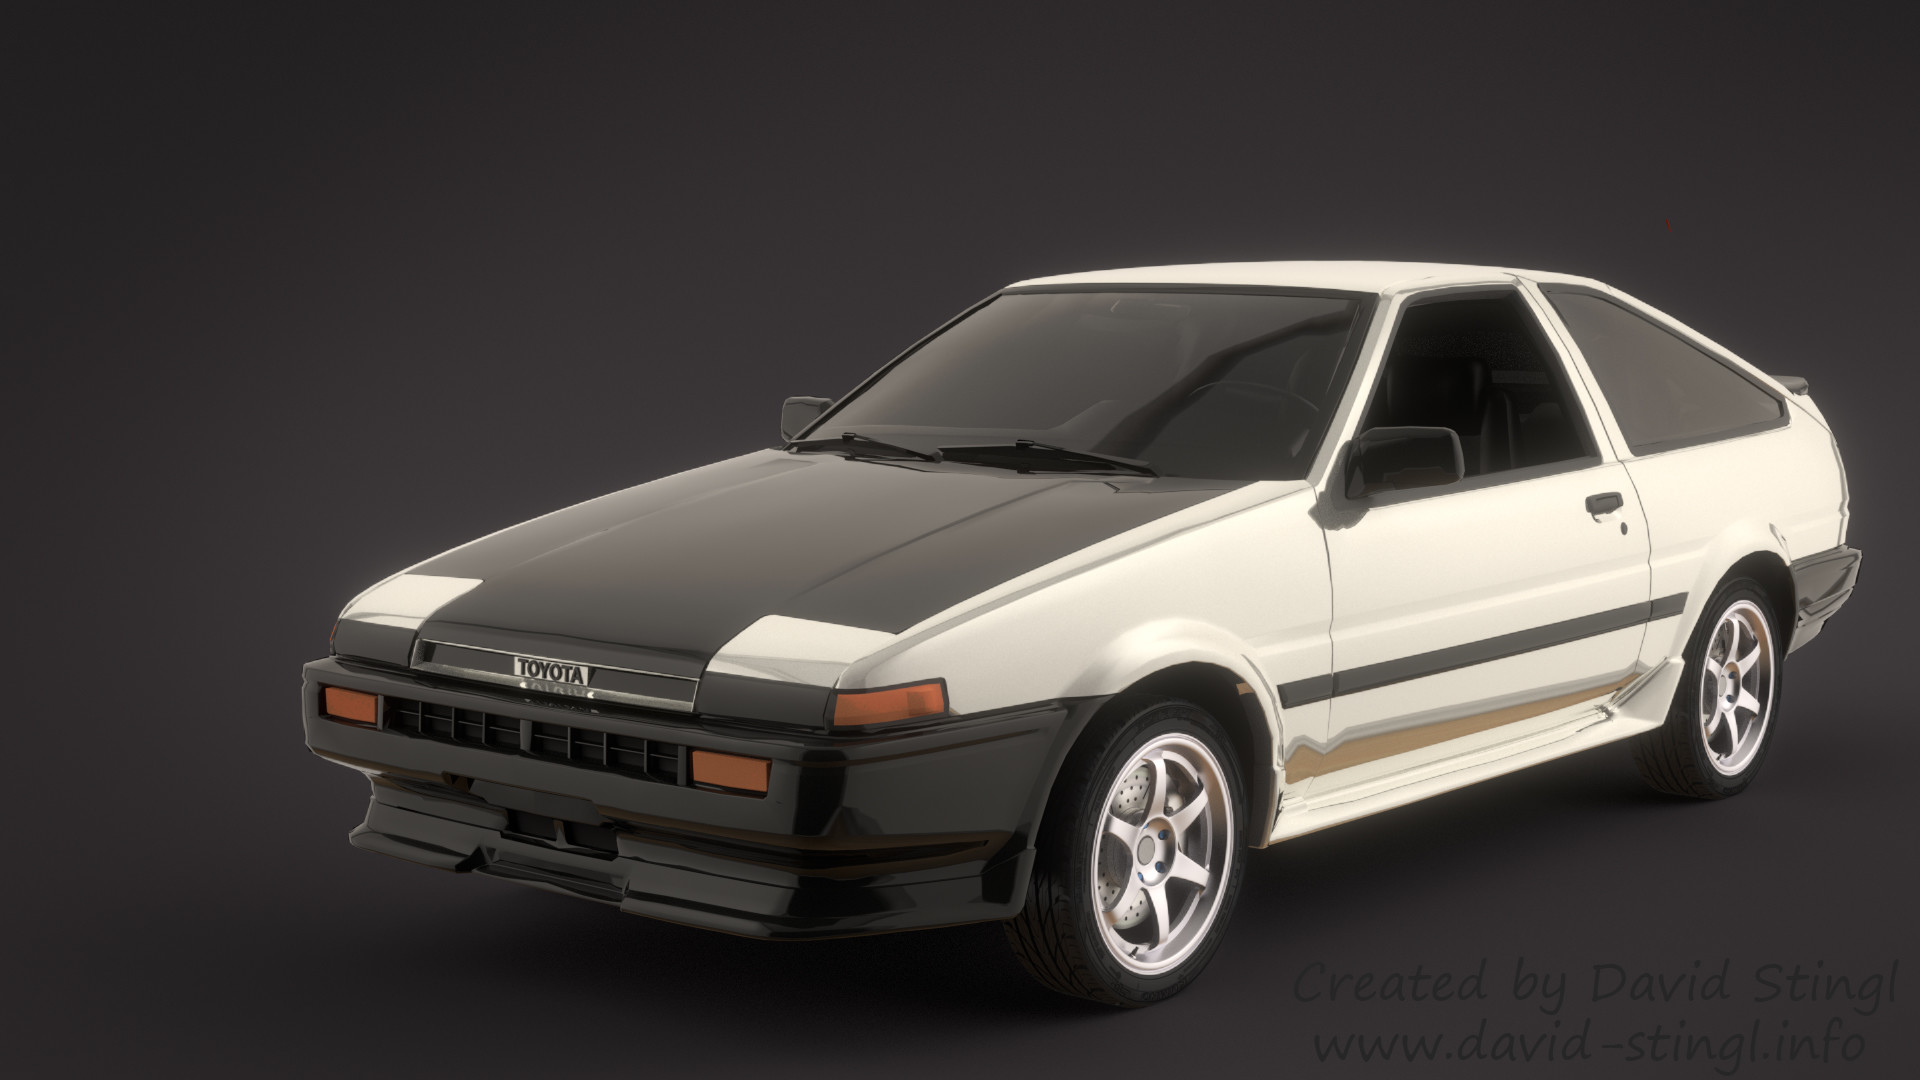 david stingl industrial designer 3d artist toyota trueno ae86 eight six. Black Bedroom Furniture Sets. Home Design Ideas